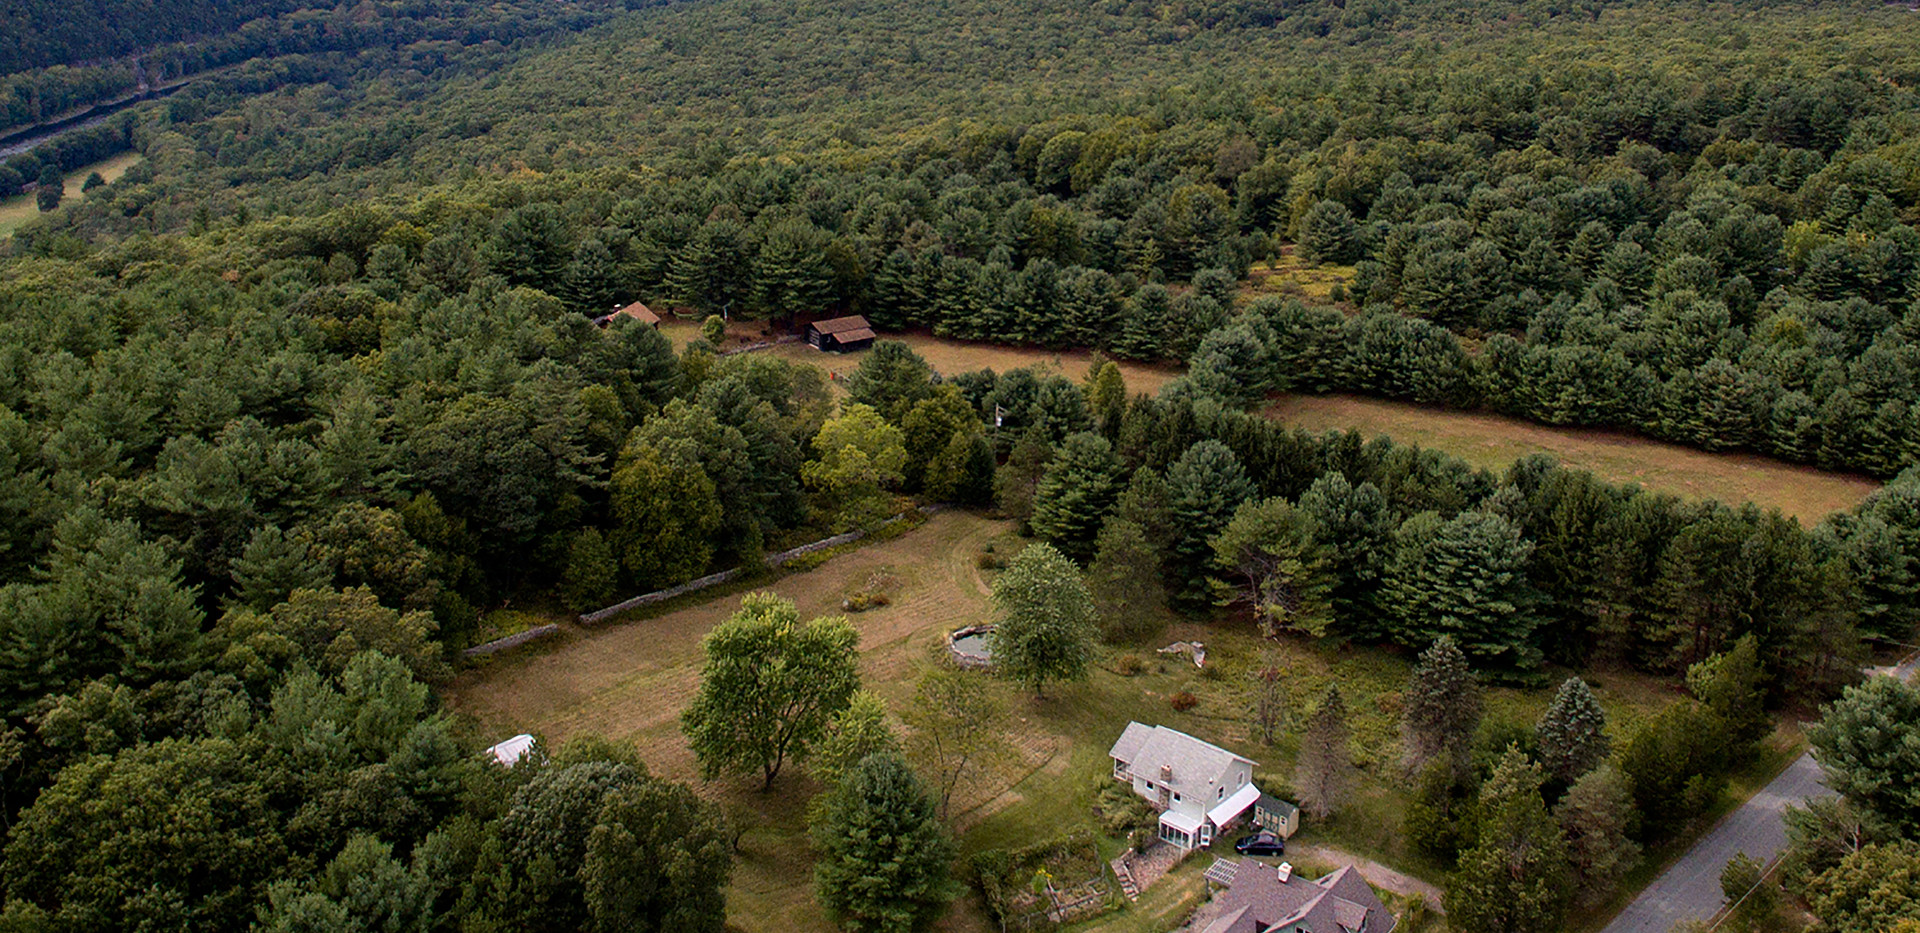 Aerial drone view looking west towards Pennsylvania